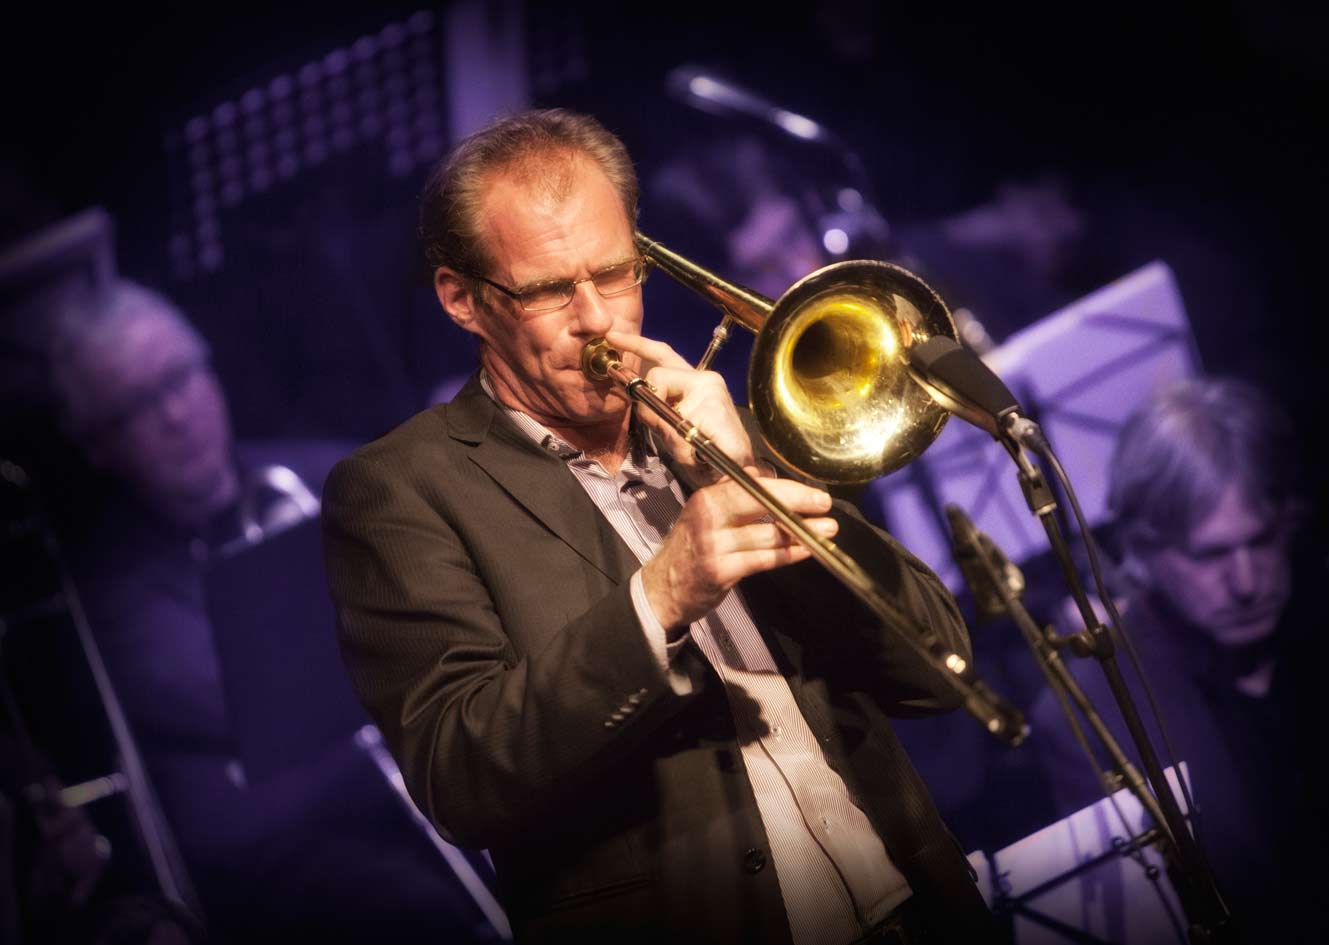 Leading Dutch trombone player Ilja Reingoud